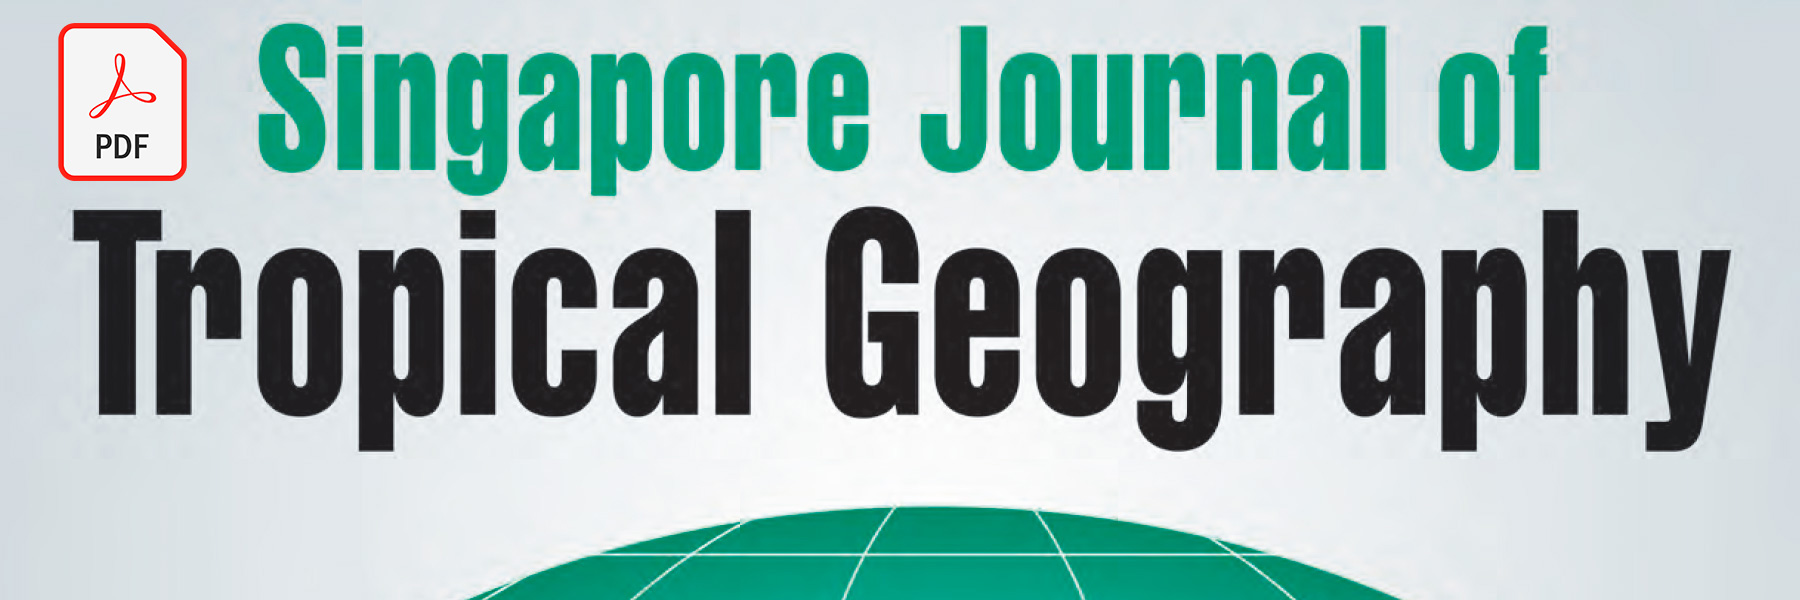 Dr Steven A Martin | Thai Geography Literature Review and Research | 2020 Singapore Journal of Tropical Geography | Systematic Review Example